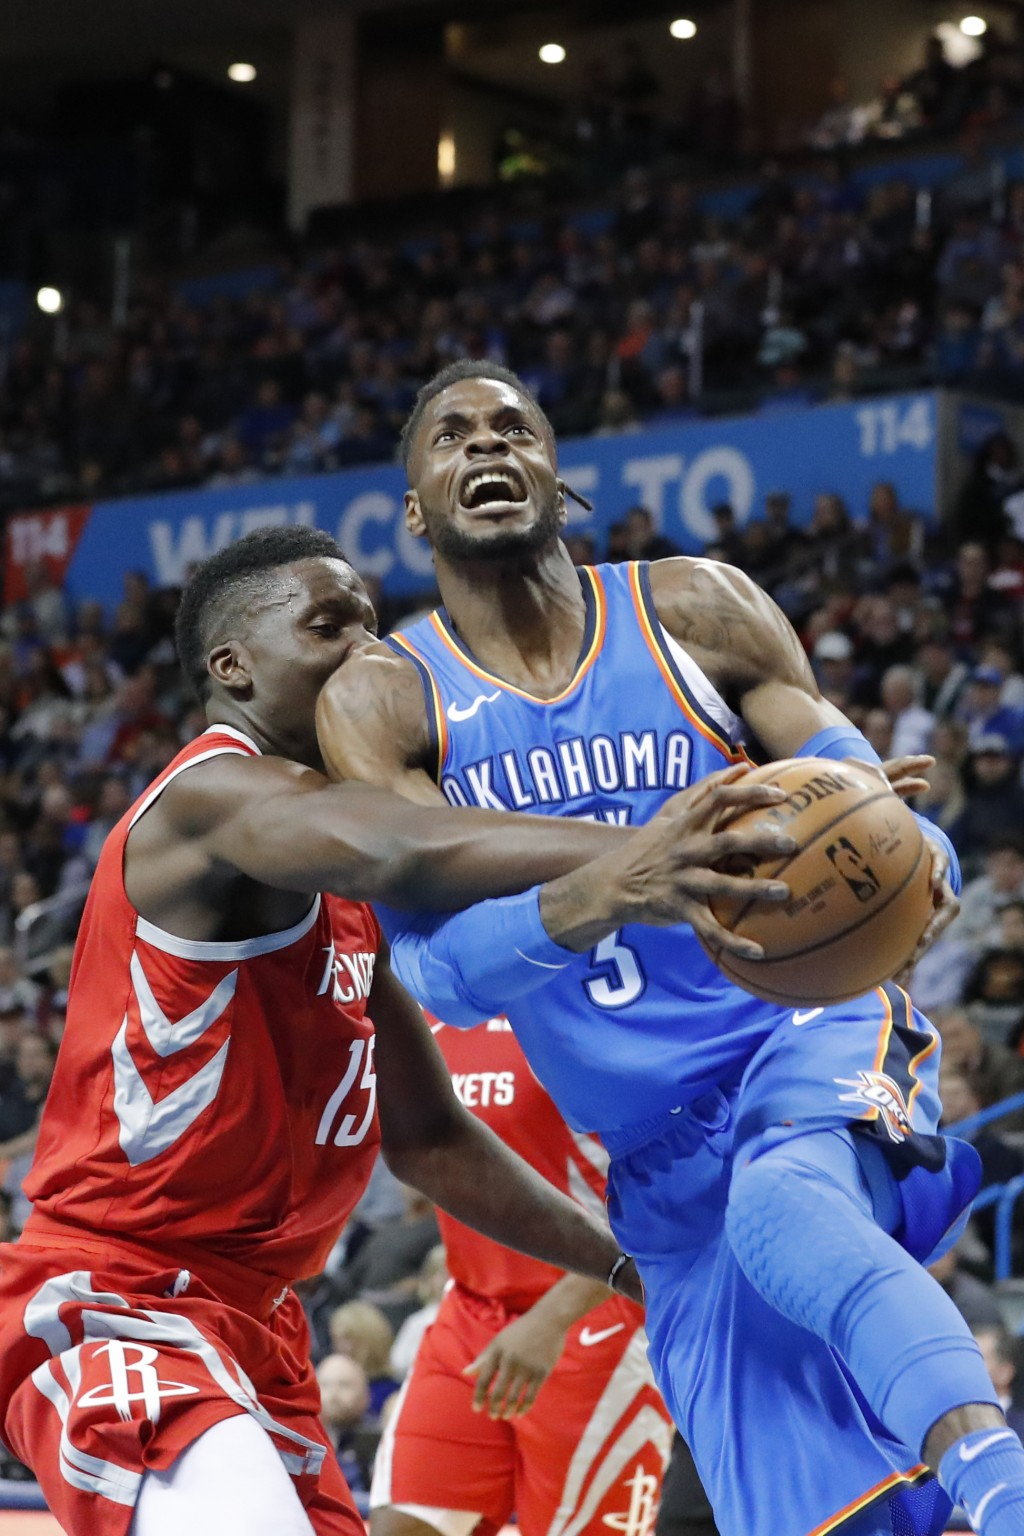 Oklahoma City Thunder forward Nerlens Noel (3) drives to the basket as Houston Rockets center Clint Capela (15) defends during the first half of an NB